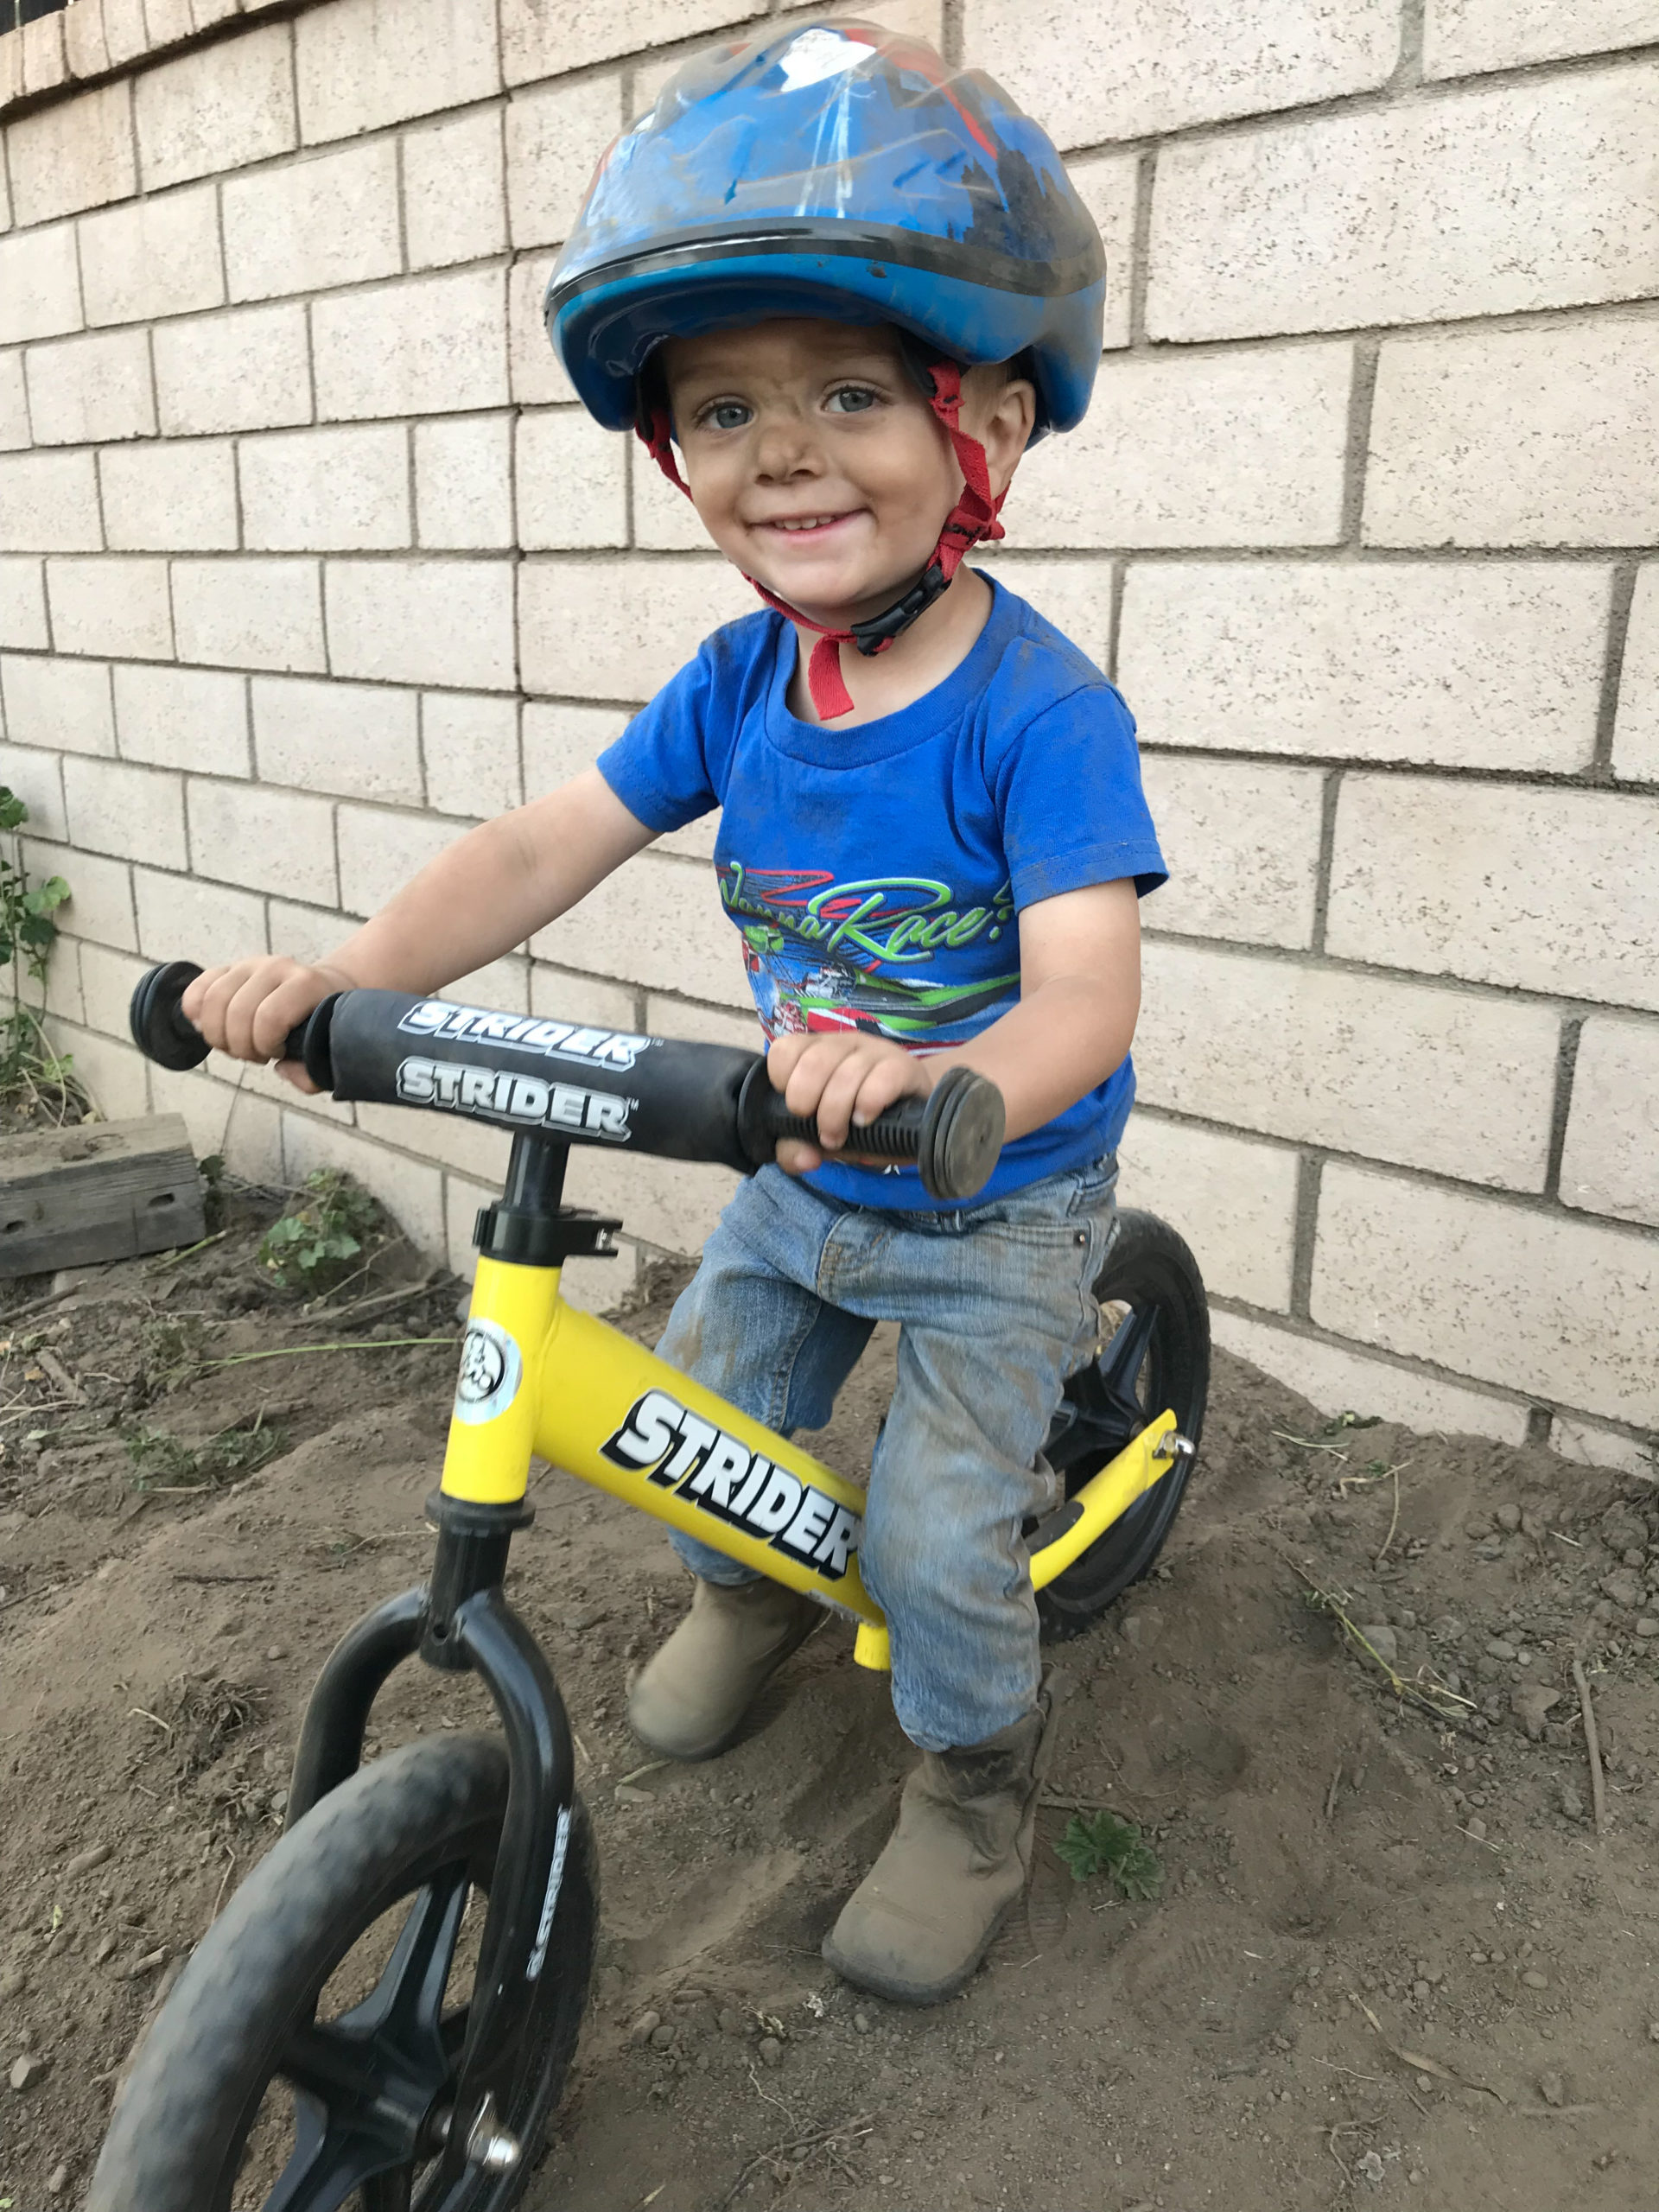 Young boy covered in dirt riding yellow 12 Sport